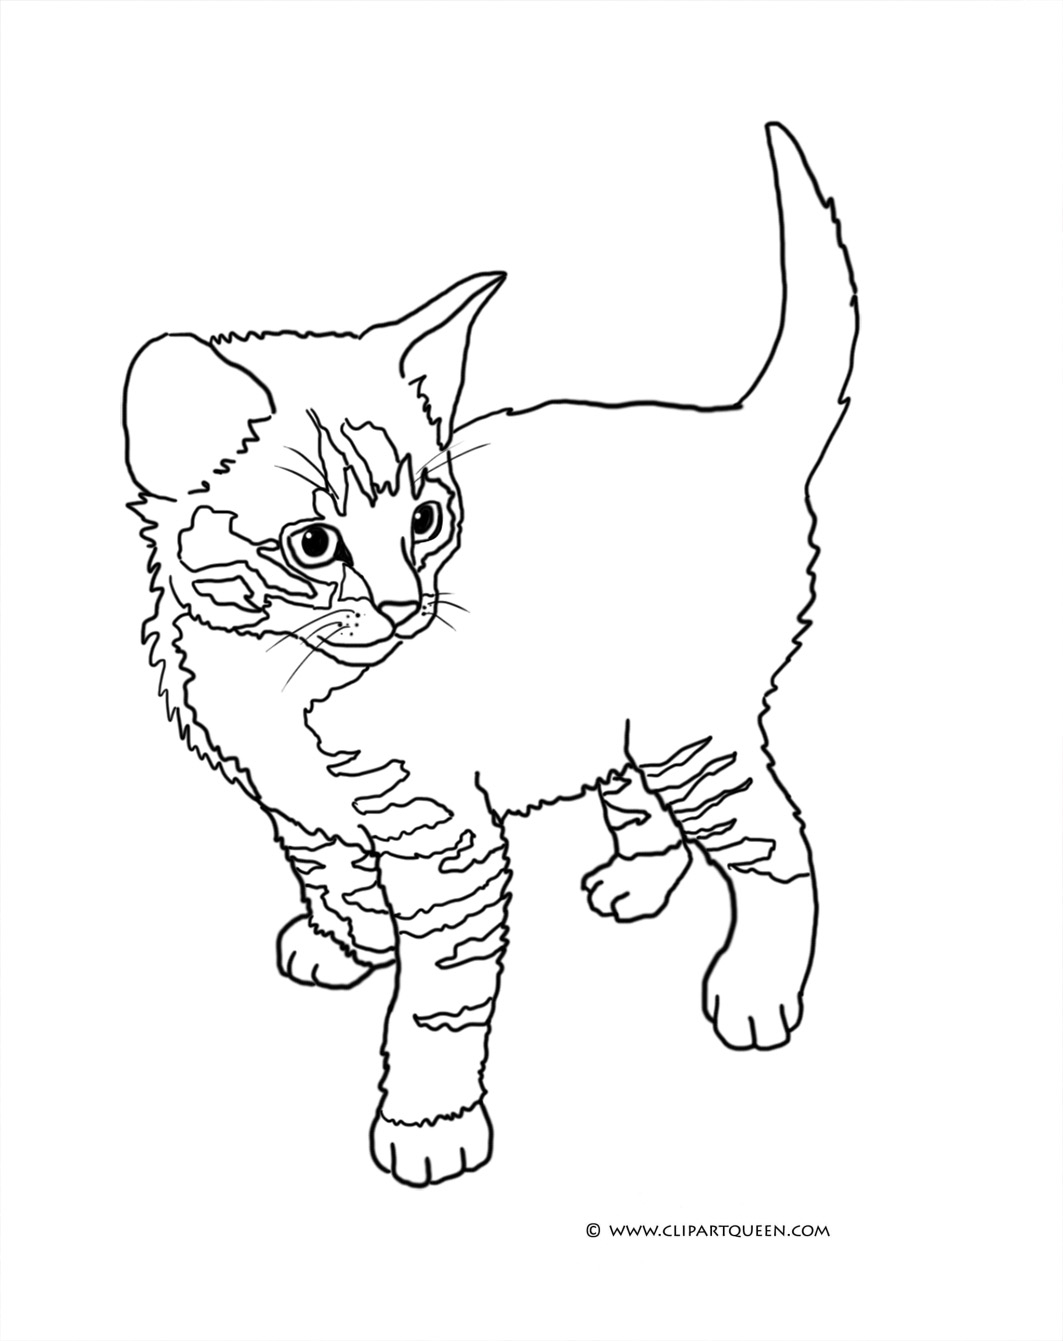 Kittens Coloring Pages Cat Coloring Pages